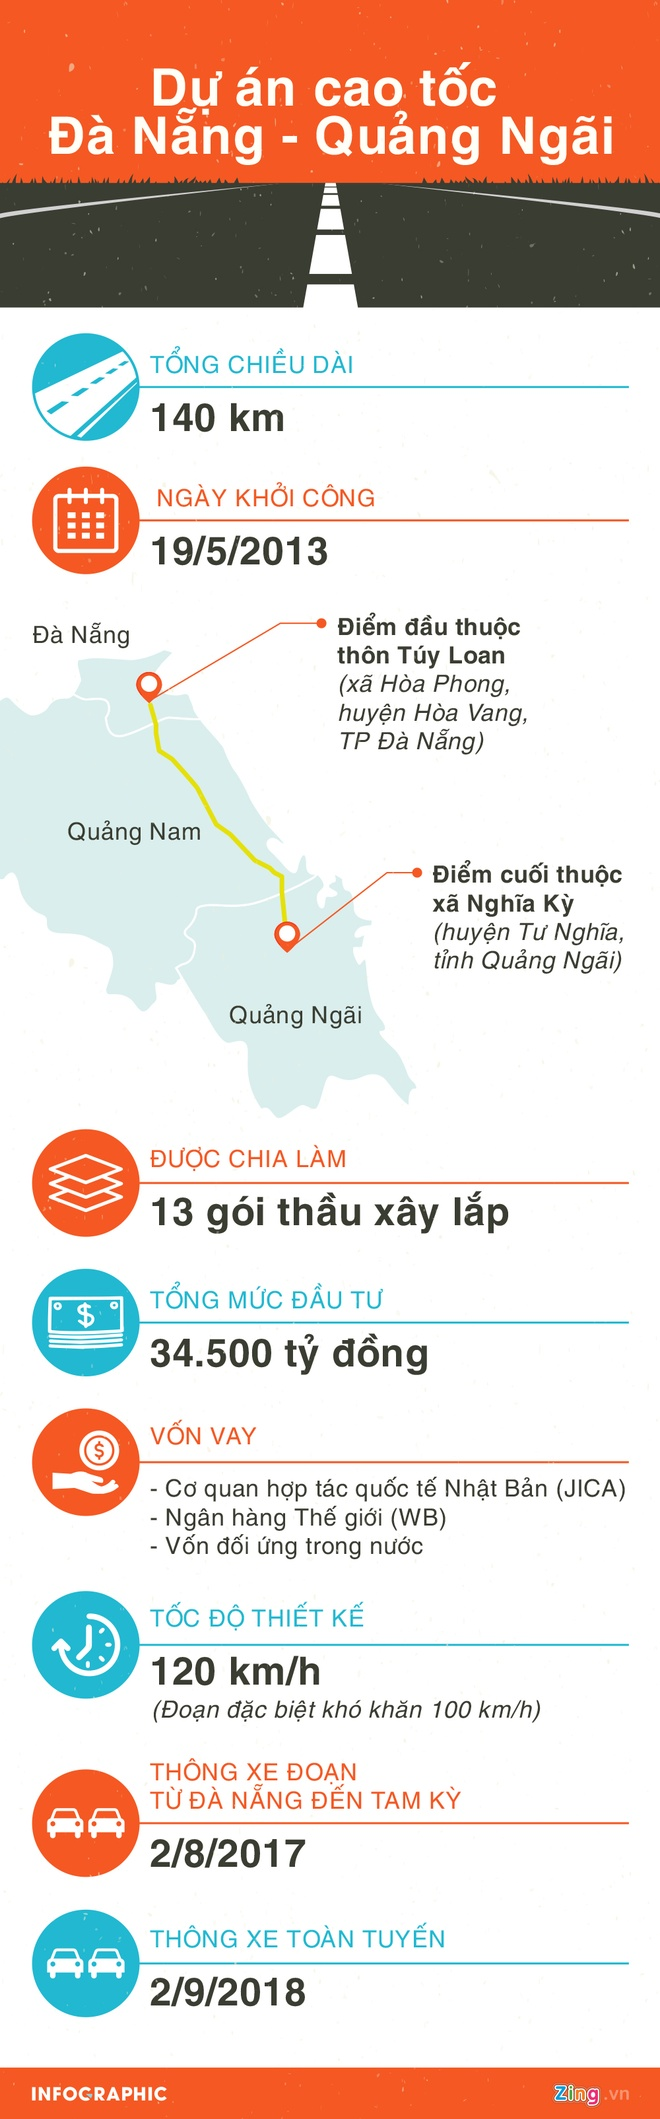 Ky luat hang loat tap the, ca nhan lien quan du an cao toc 34.500 ty hinh anh 2